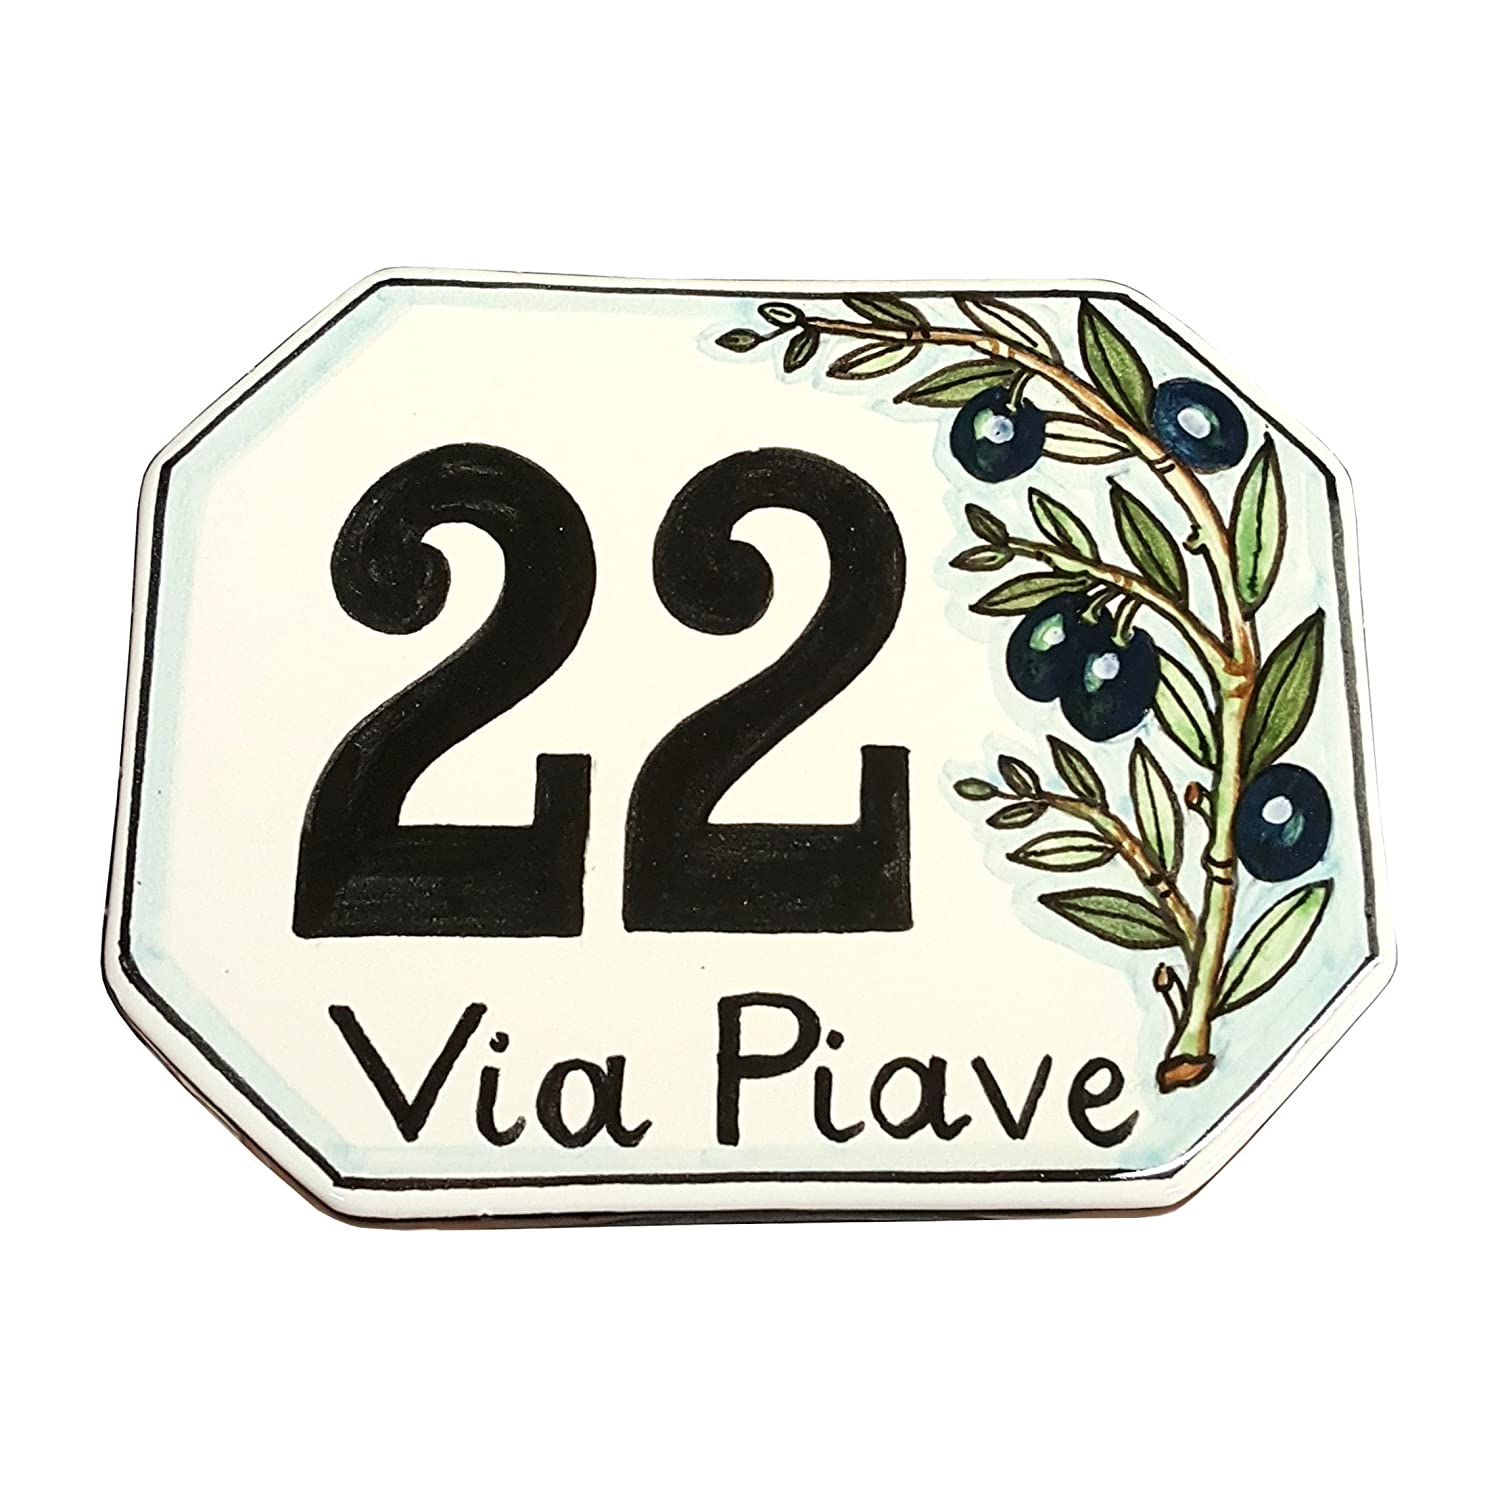 Amazon ceramiche darte parrini italian ceramic art pottery amazon ceramiche darte parrini italian ceramic art pottery tile custom house number civic address plaques decorated olive hand painted made in italy dailygadgetfo Images